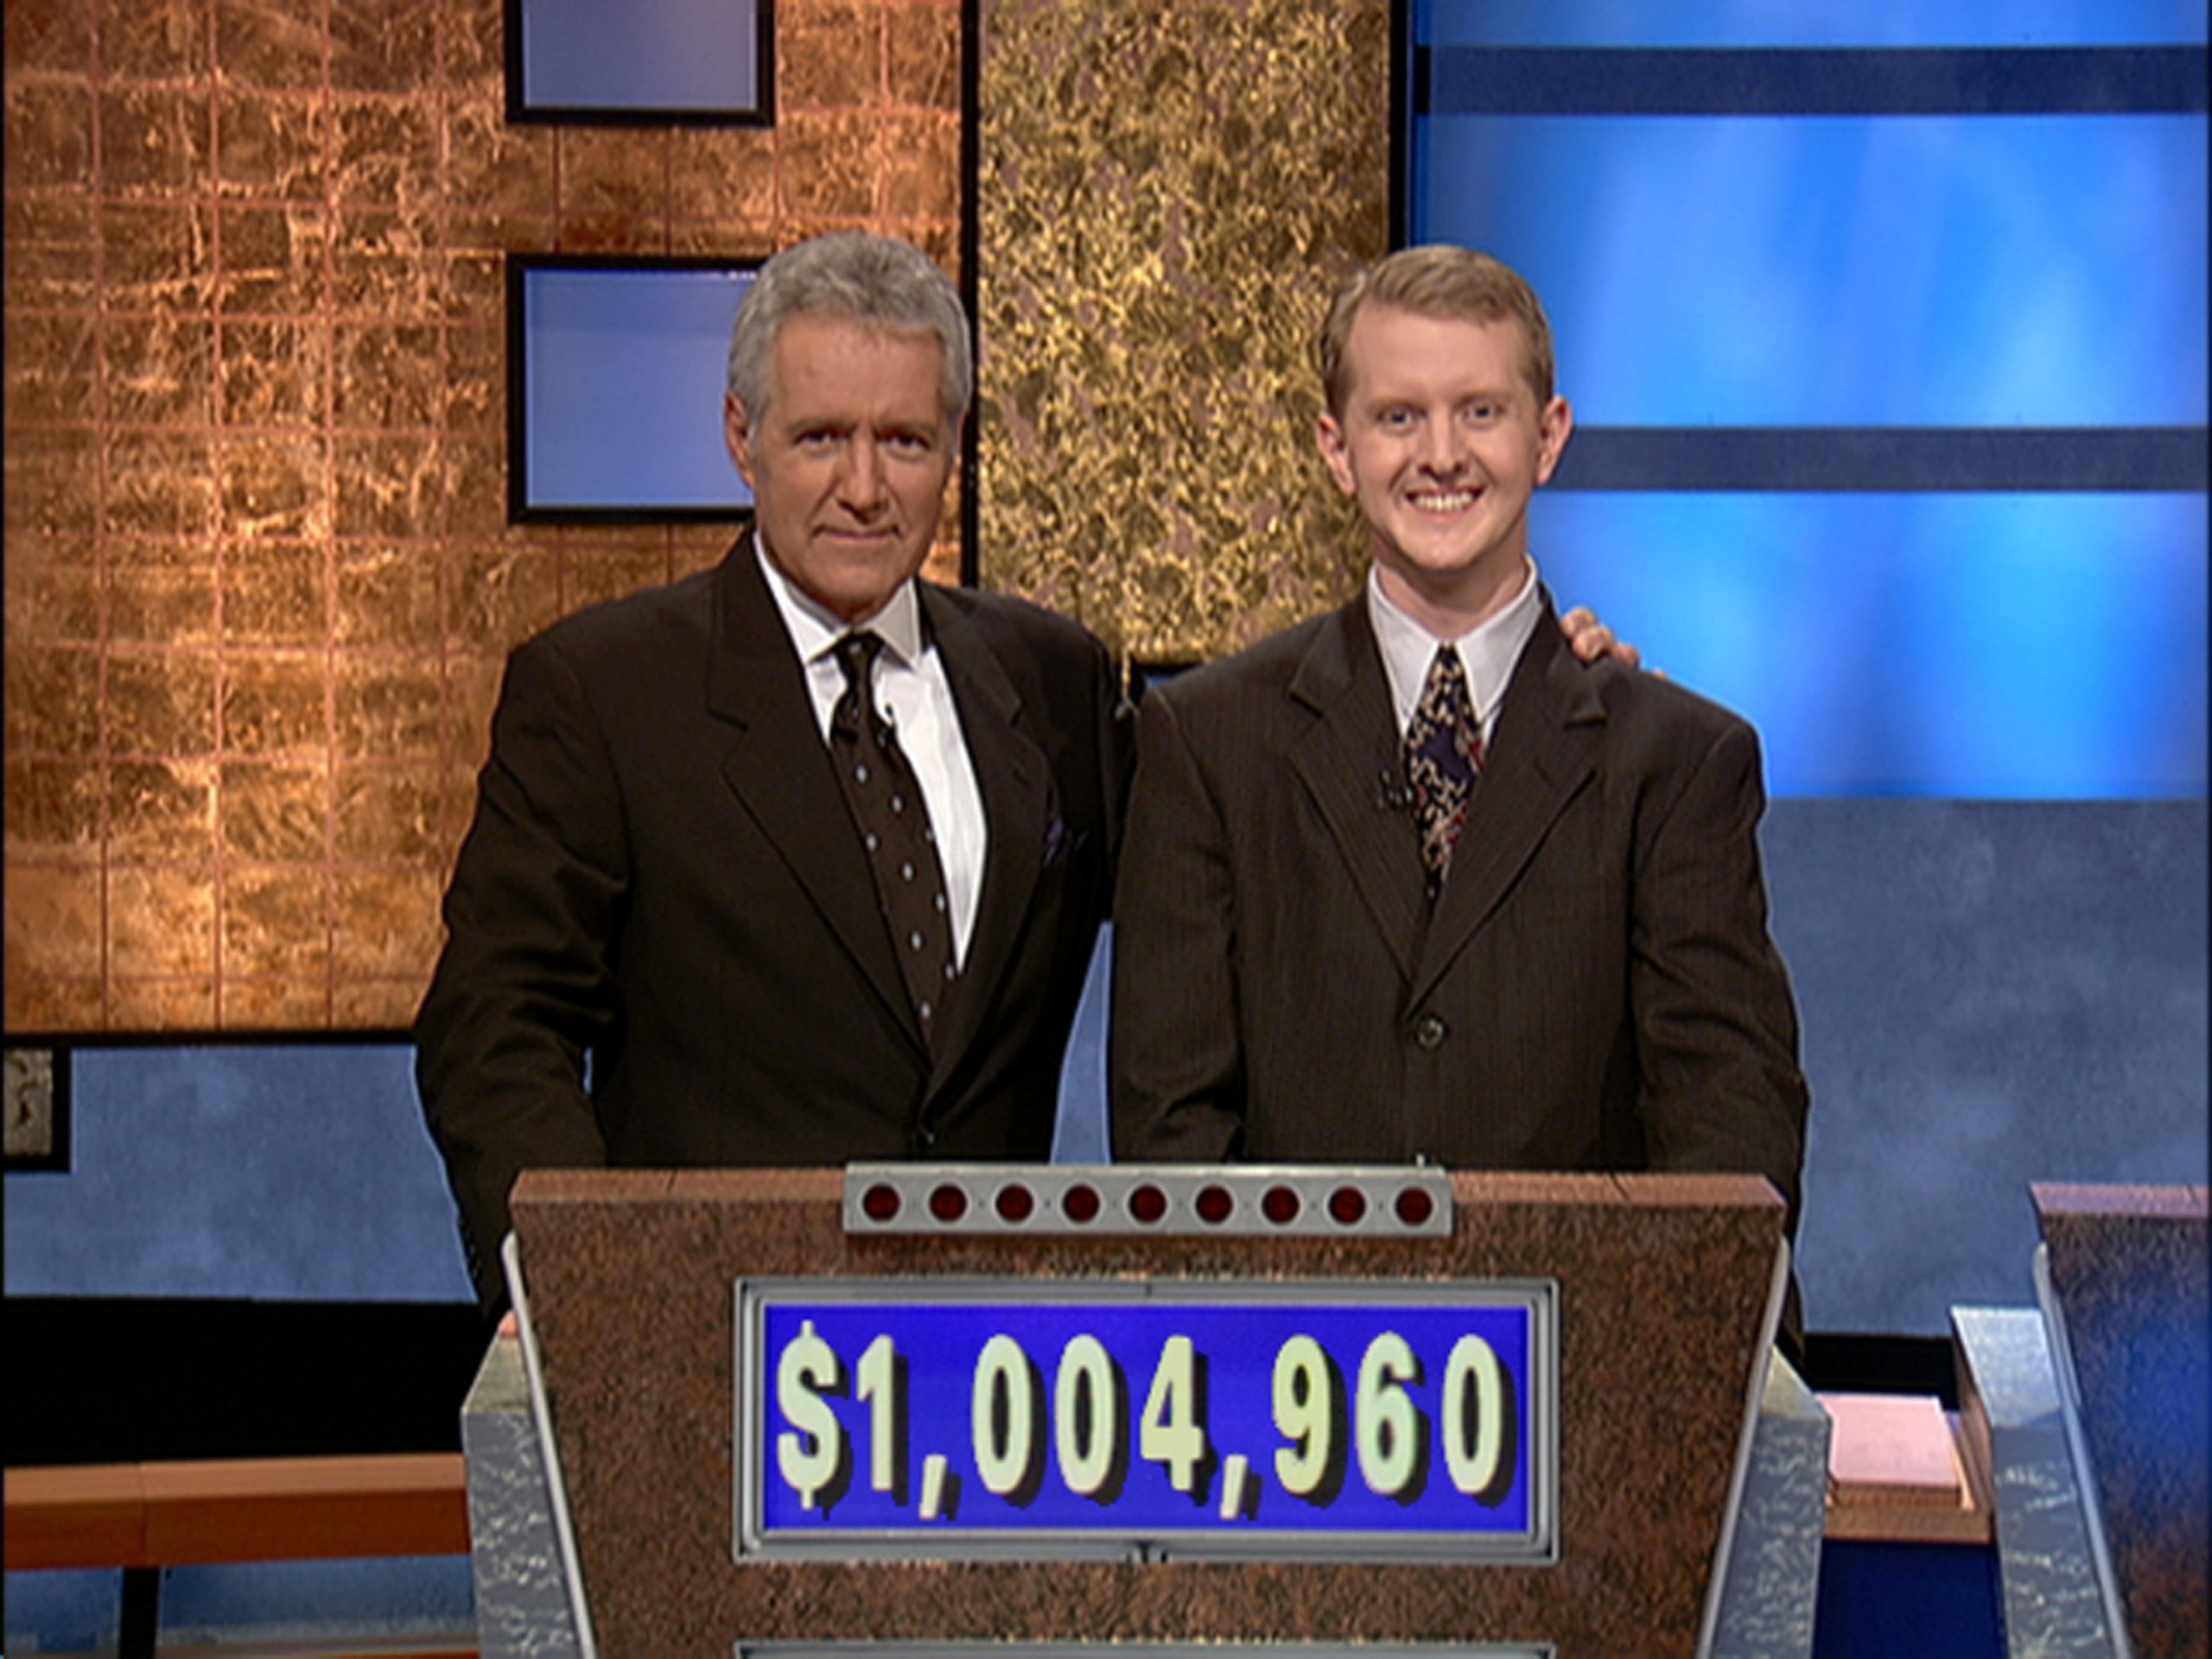 Late 'Jeopardy!' host Alex Trebek and the quiz show's winningest contestant Ken Jennings in 2004.